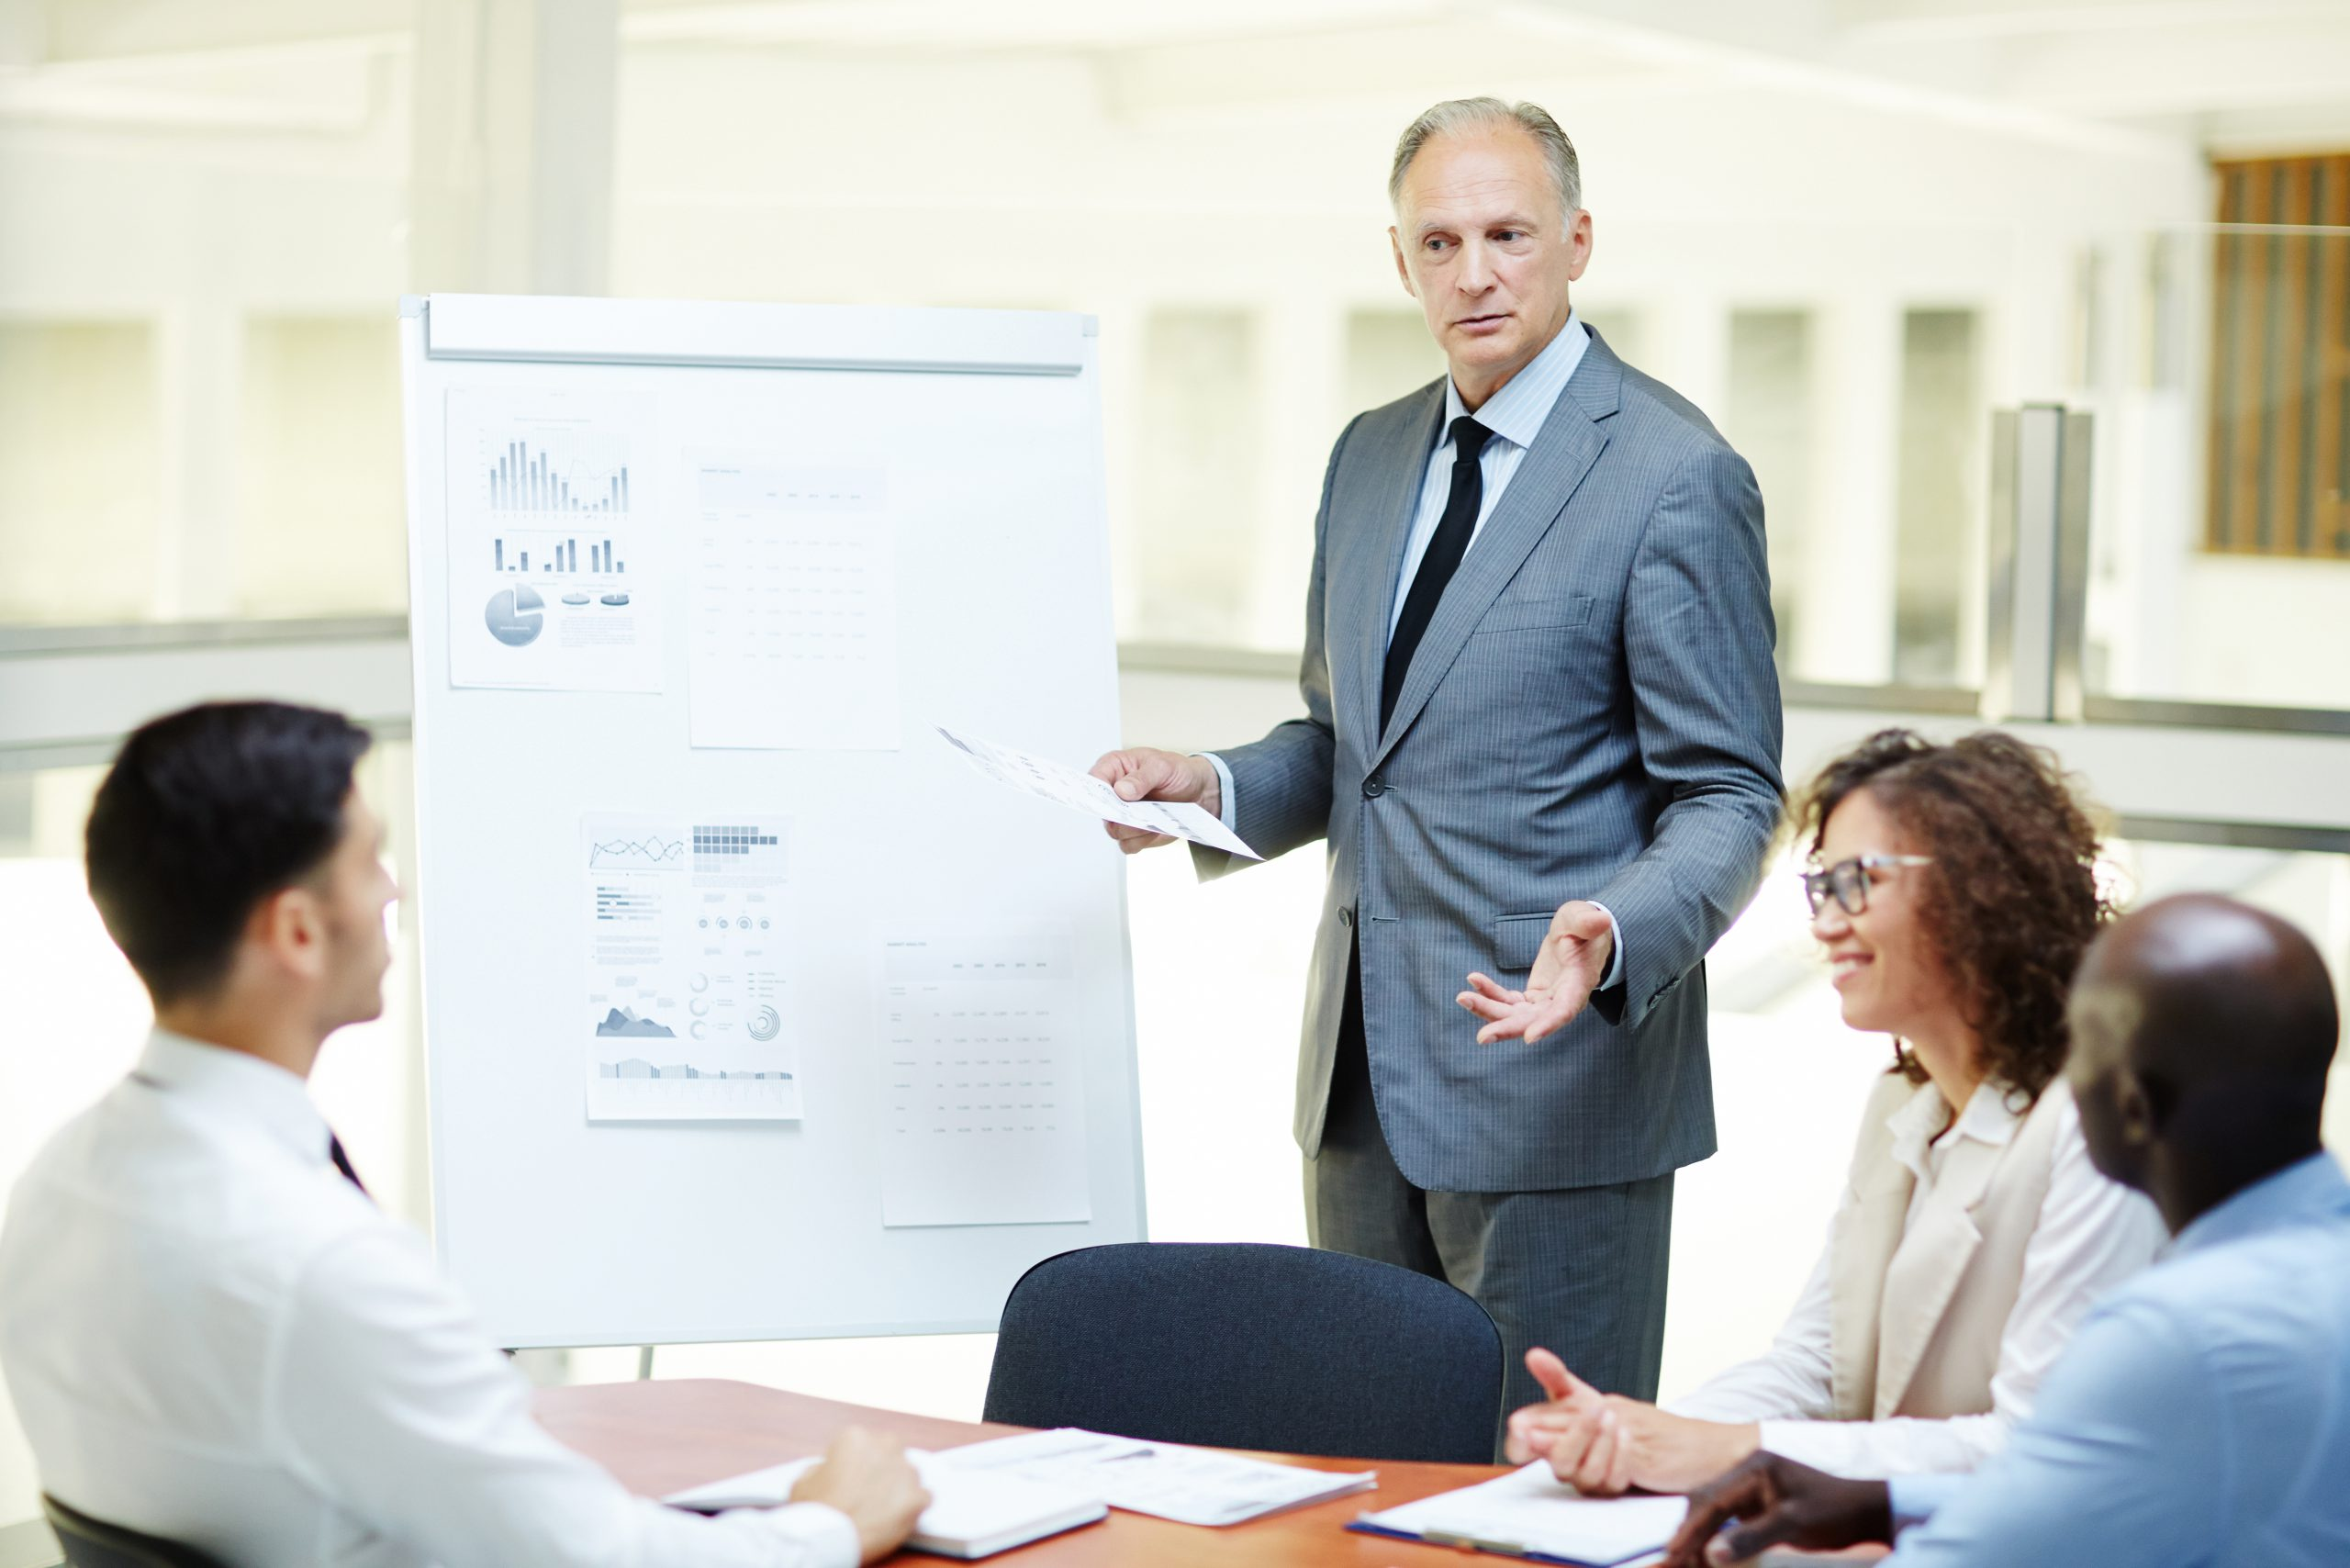 Confident senior trader with paper standing by whiteboard and discussing points of report with colleagues